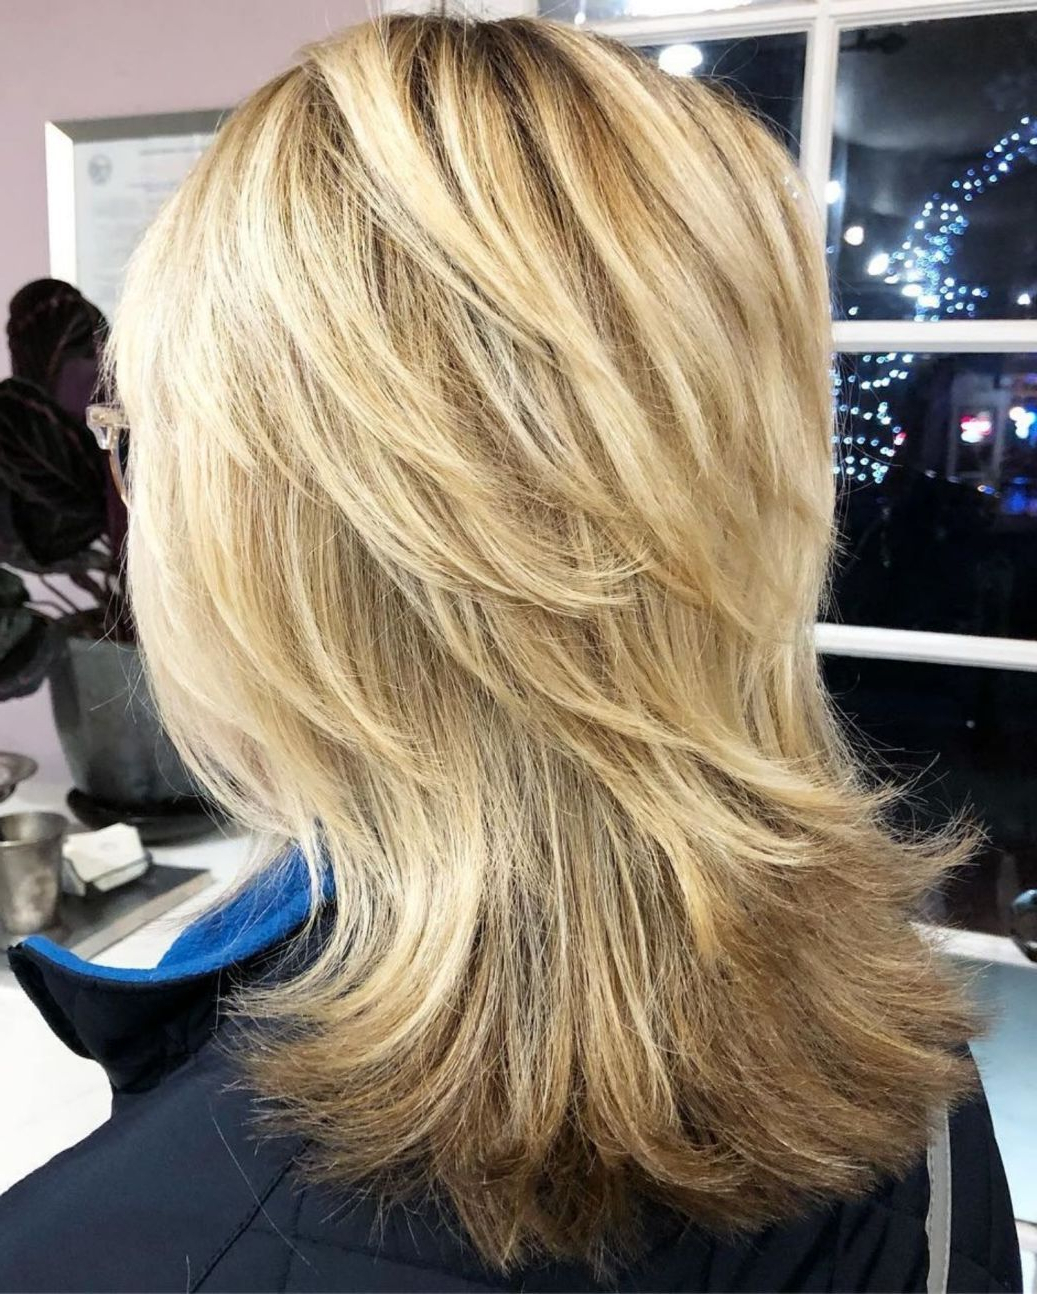 Well Known Long Feathered Shag Haircuts For Thick Hair Pertaining To Pin On Hair Cuts (Gallery 4 of 20)